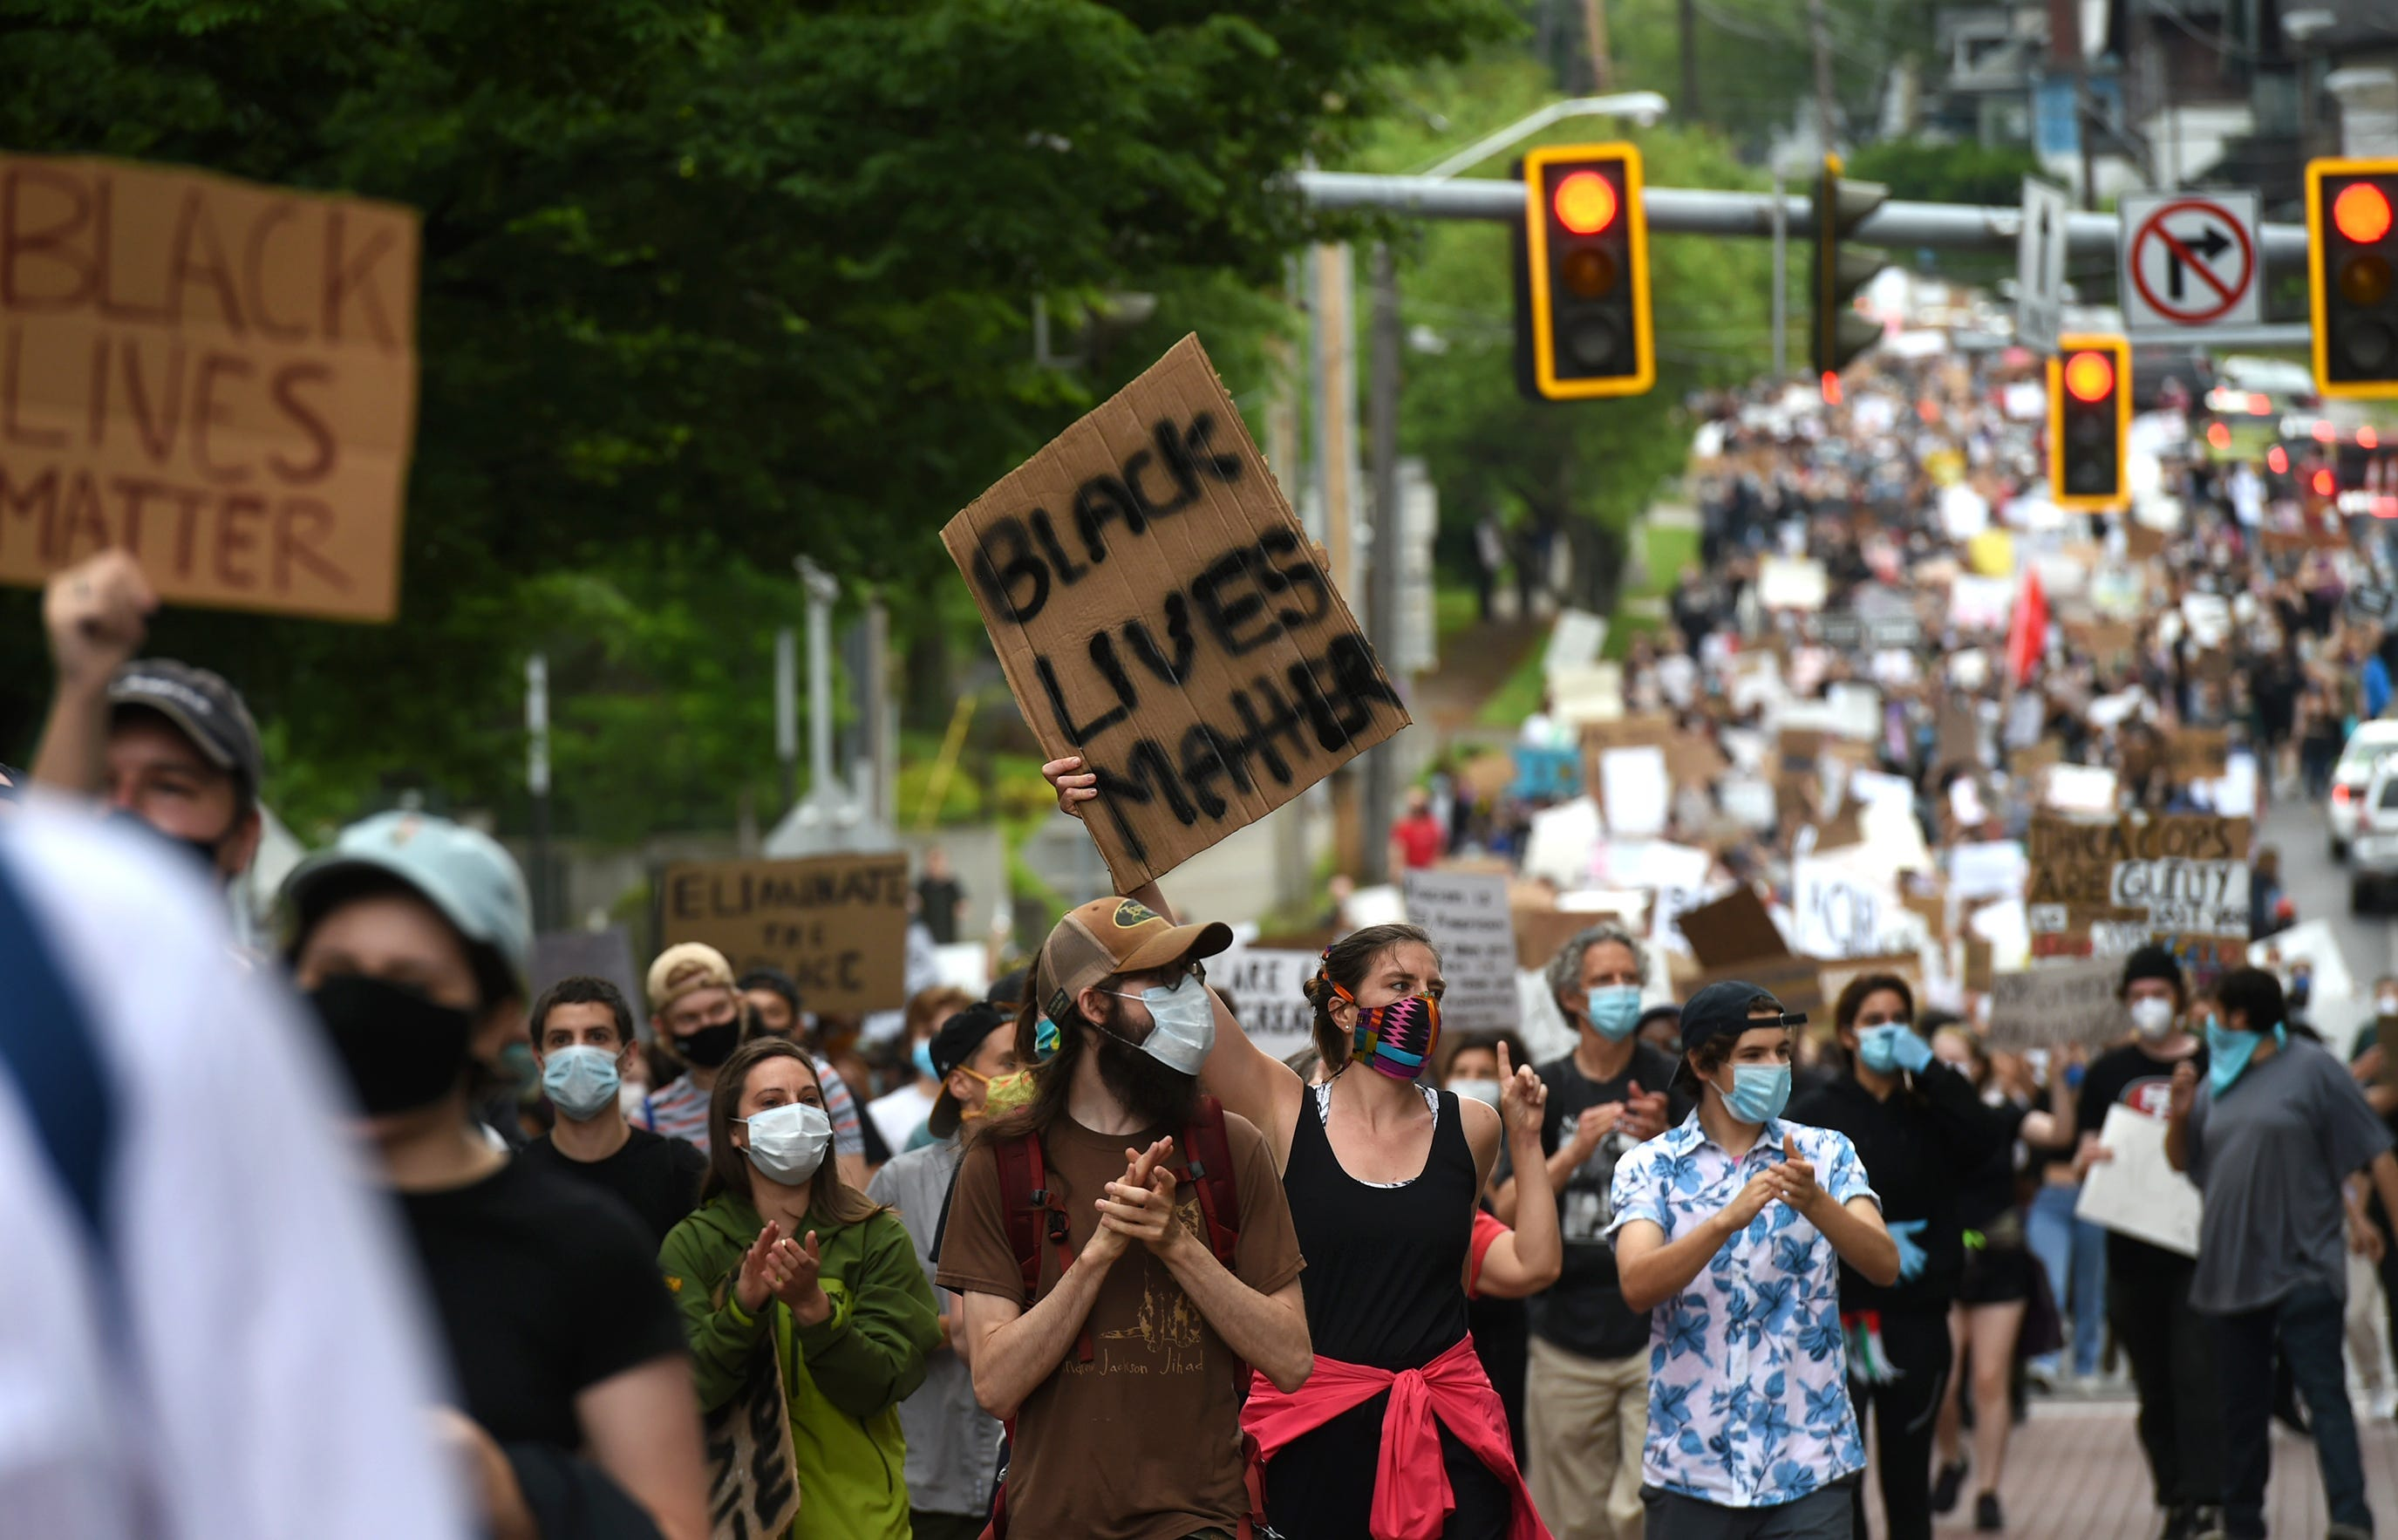 Hundreds of protesters march down a street in Ithaca, N.Y., as part of the March 4 Floyd, a peaceful protest against police brutality and systematic oppression on Wednesday, June 3, 2020.